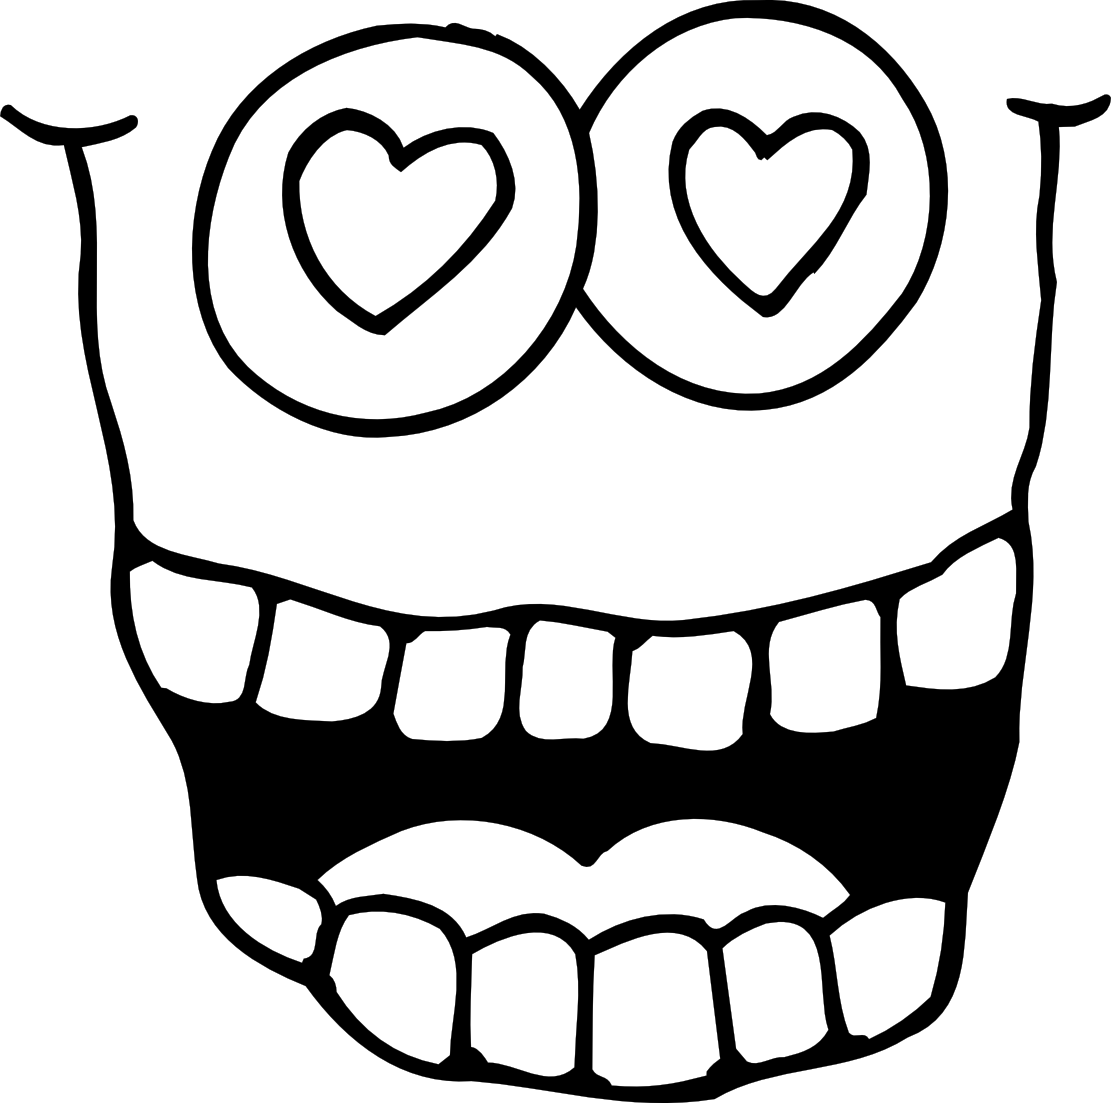 googly eyes coloring page - quiet clipart black and white clipart panda free